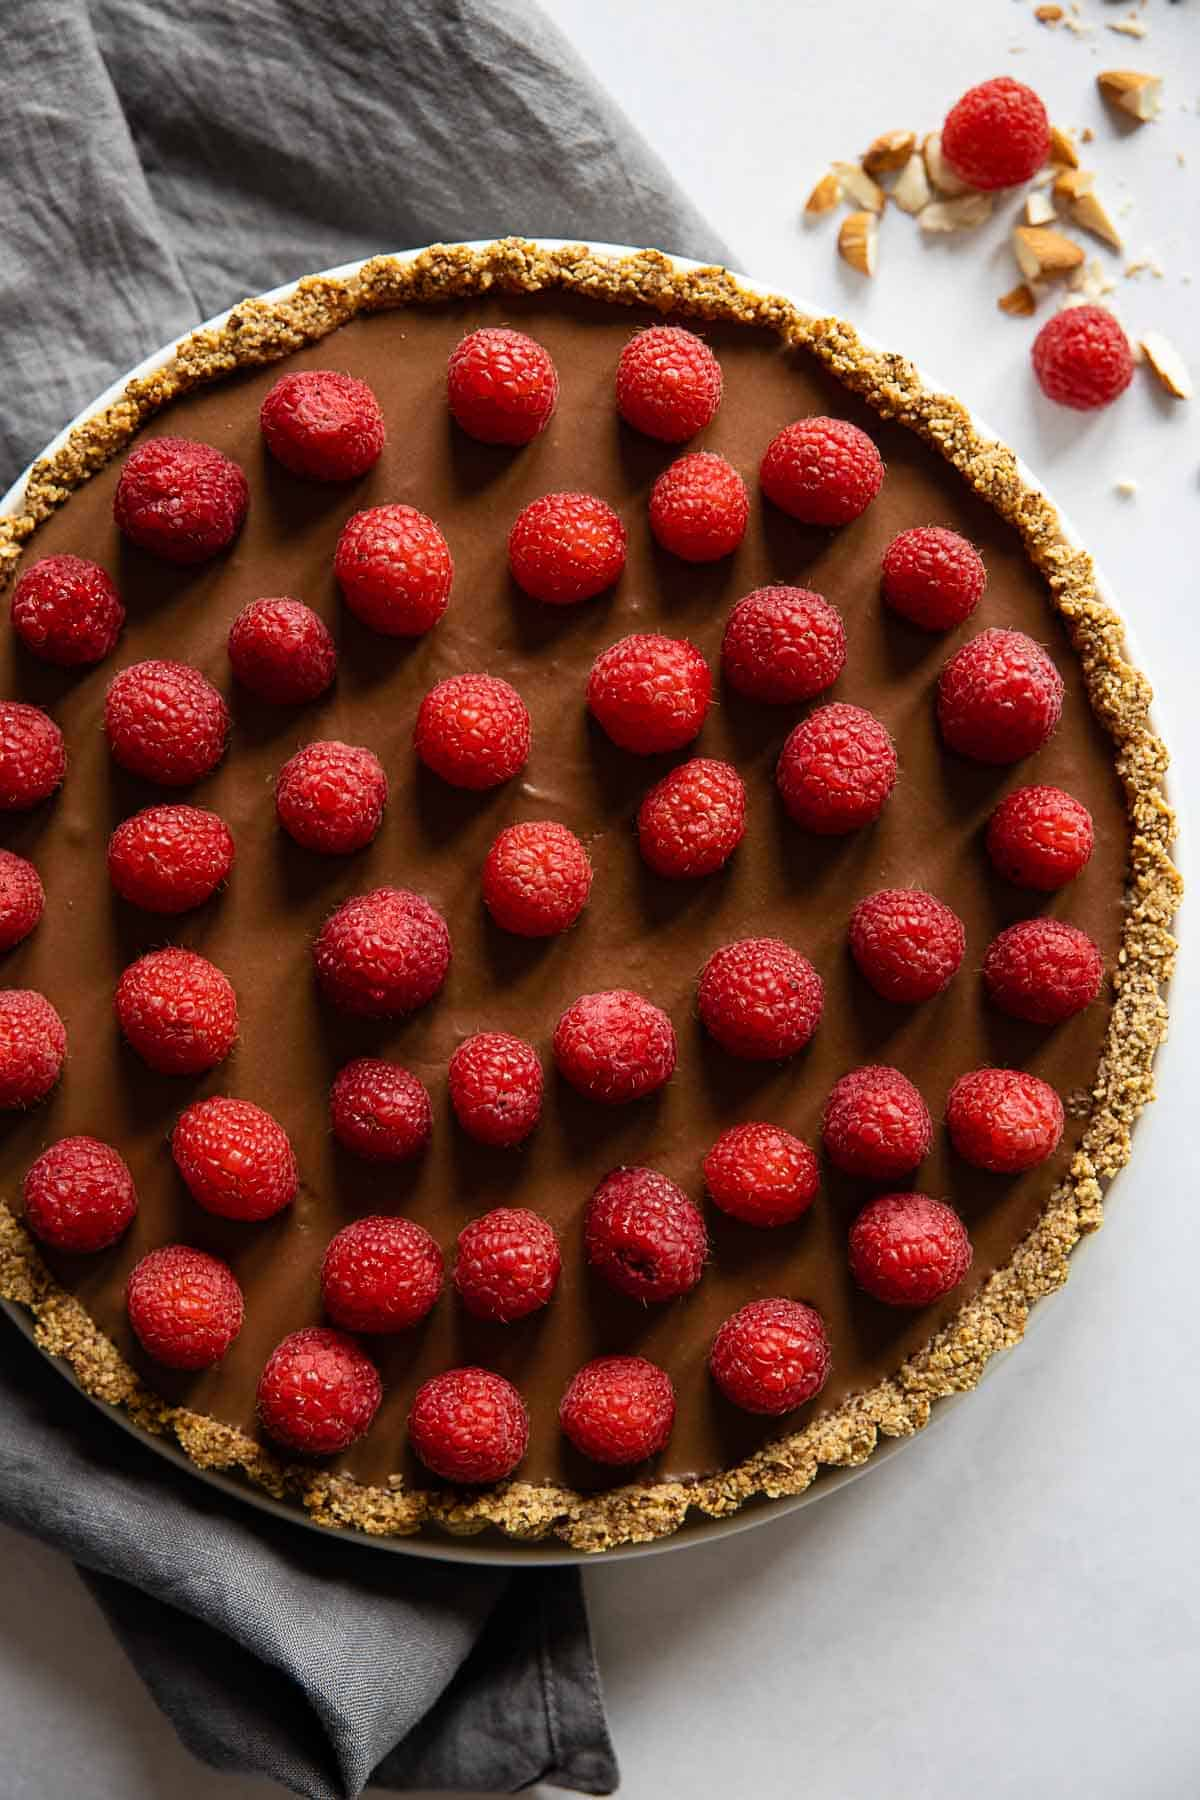 Chocolate Raspberry Tart with grey napkin next to it.